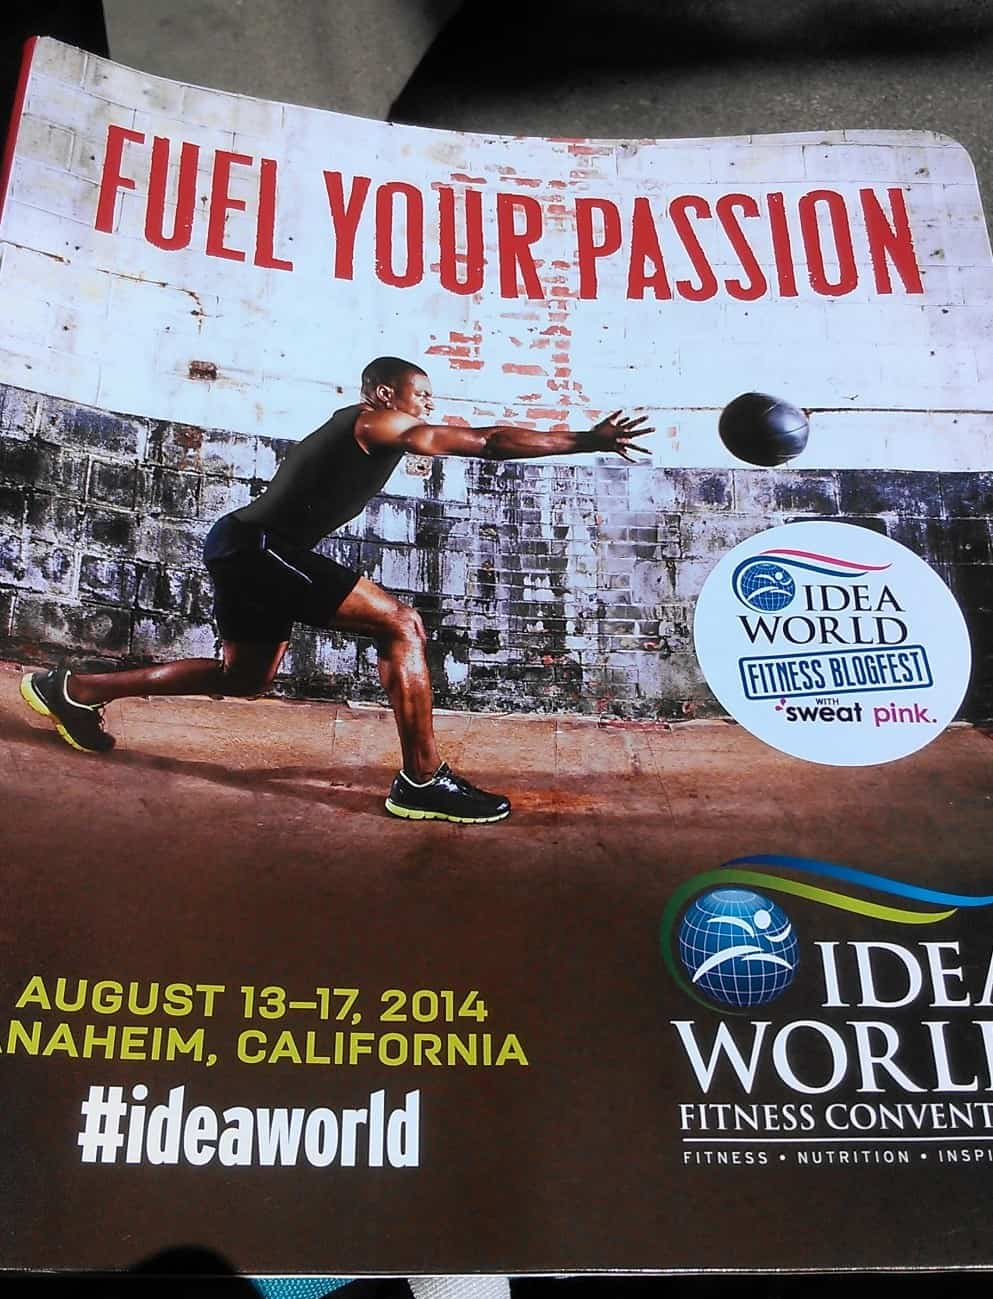 IDEA World Convention Program